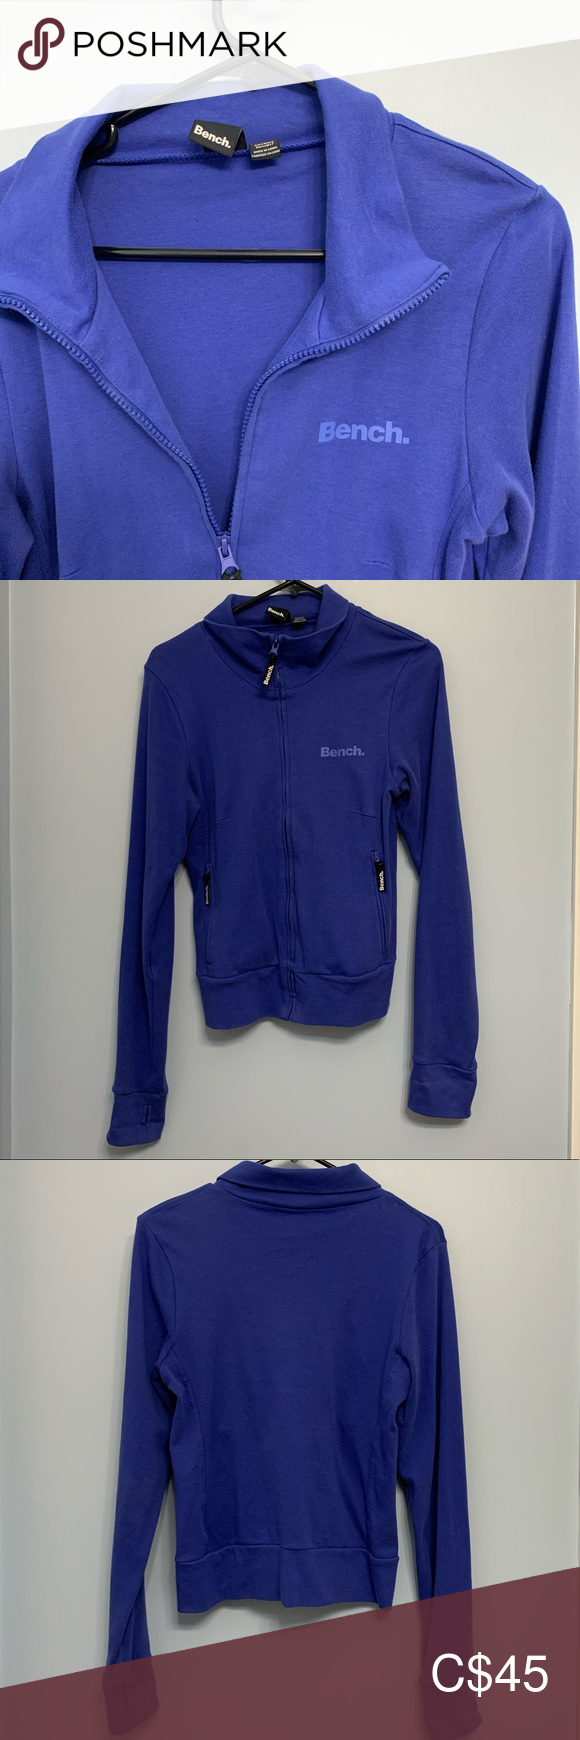 Blue Bench Zip Up Jacket Bench Jackets Blue Bench Jackets For Women